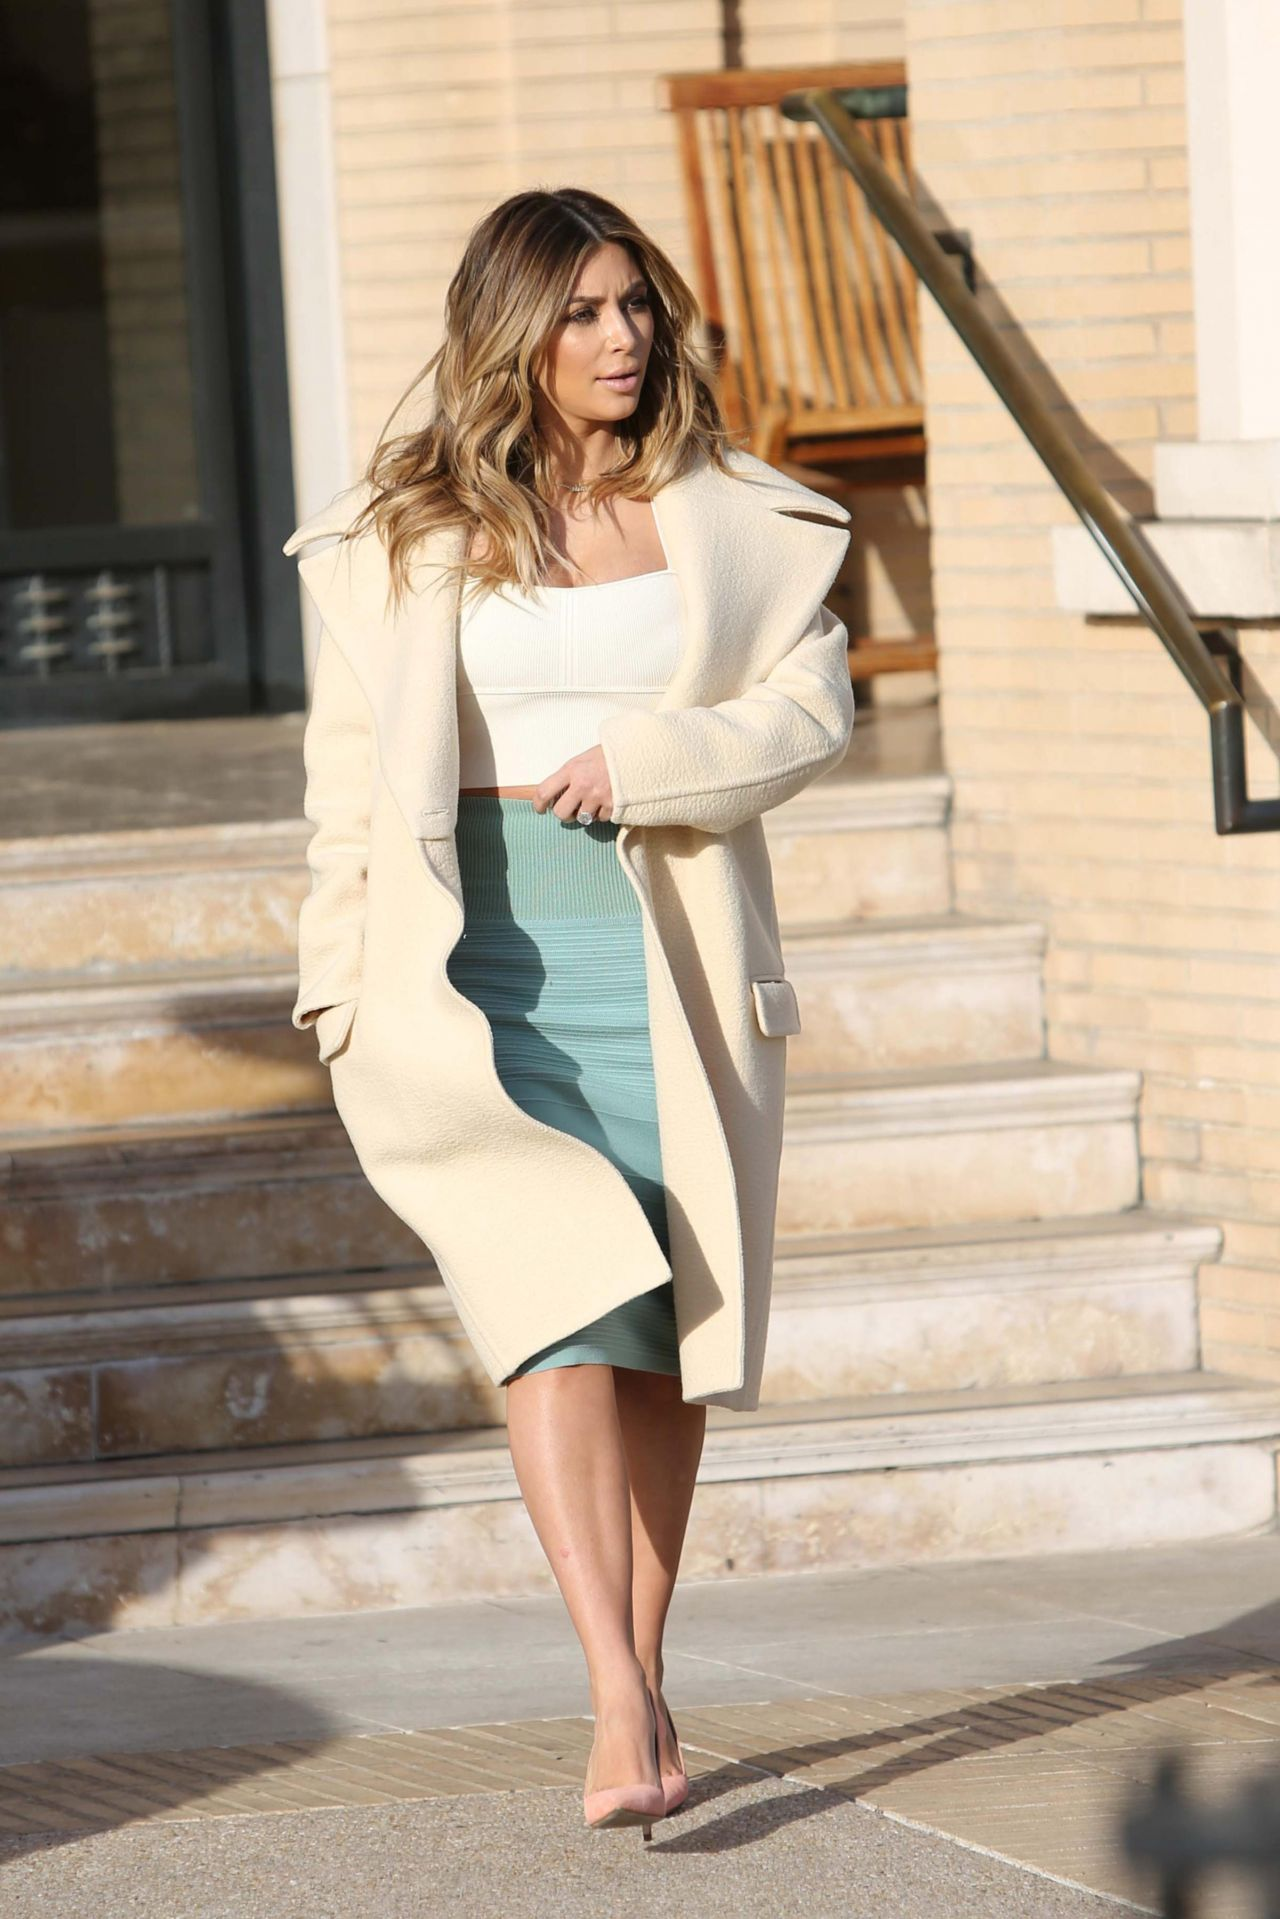 Kim Kardashian- Out for Shopping in Beverly Hills - January 2014